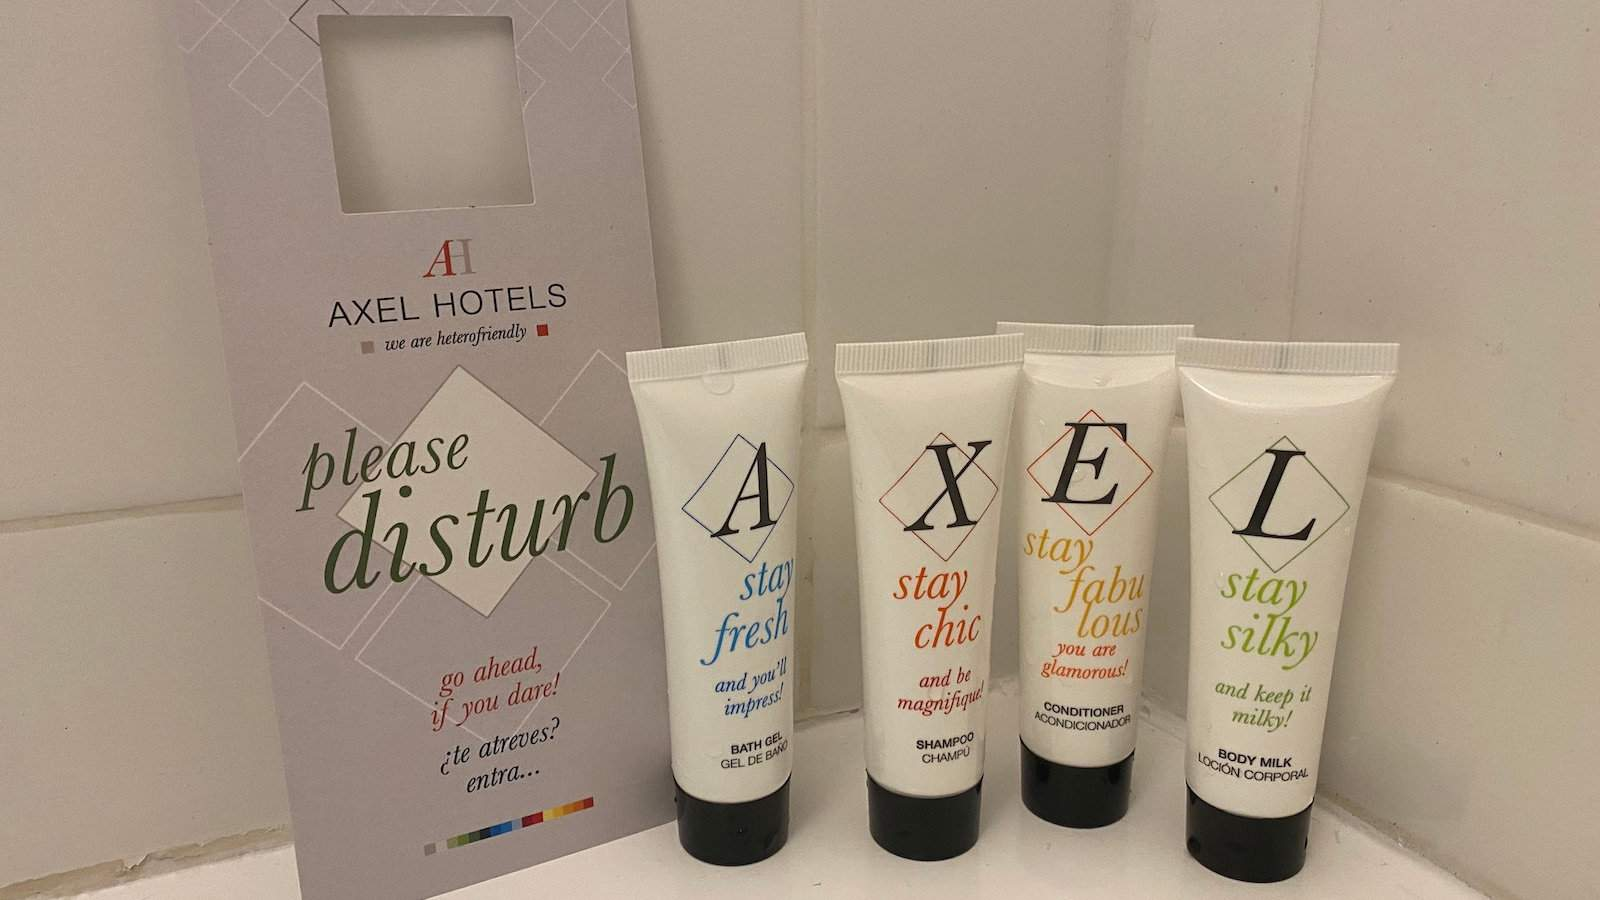 The Axel Hotel in Berlin is known as the 'grindr' hotel for its tolerant attitude to hanky panky and the fact it is a 'hetero-friendly' hotel!